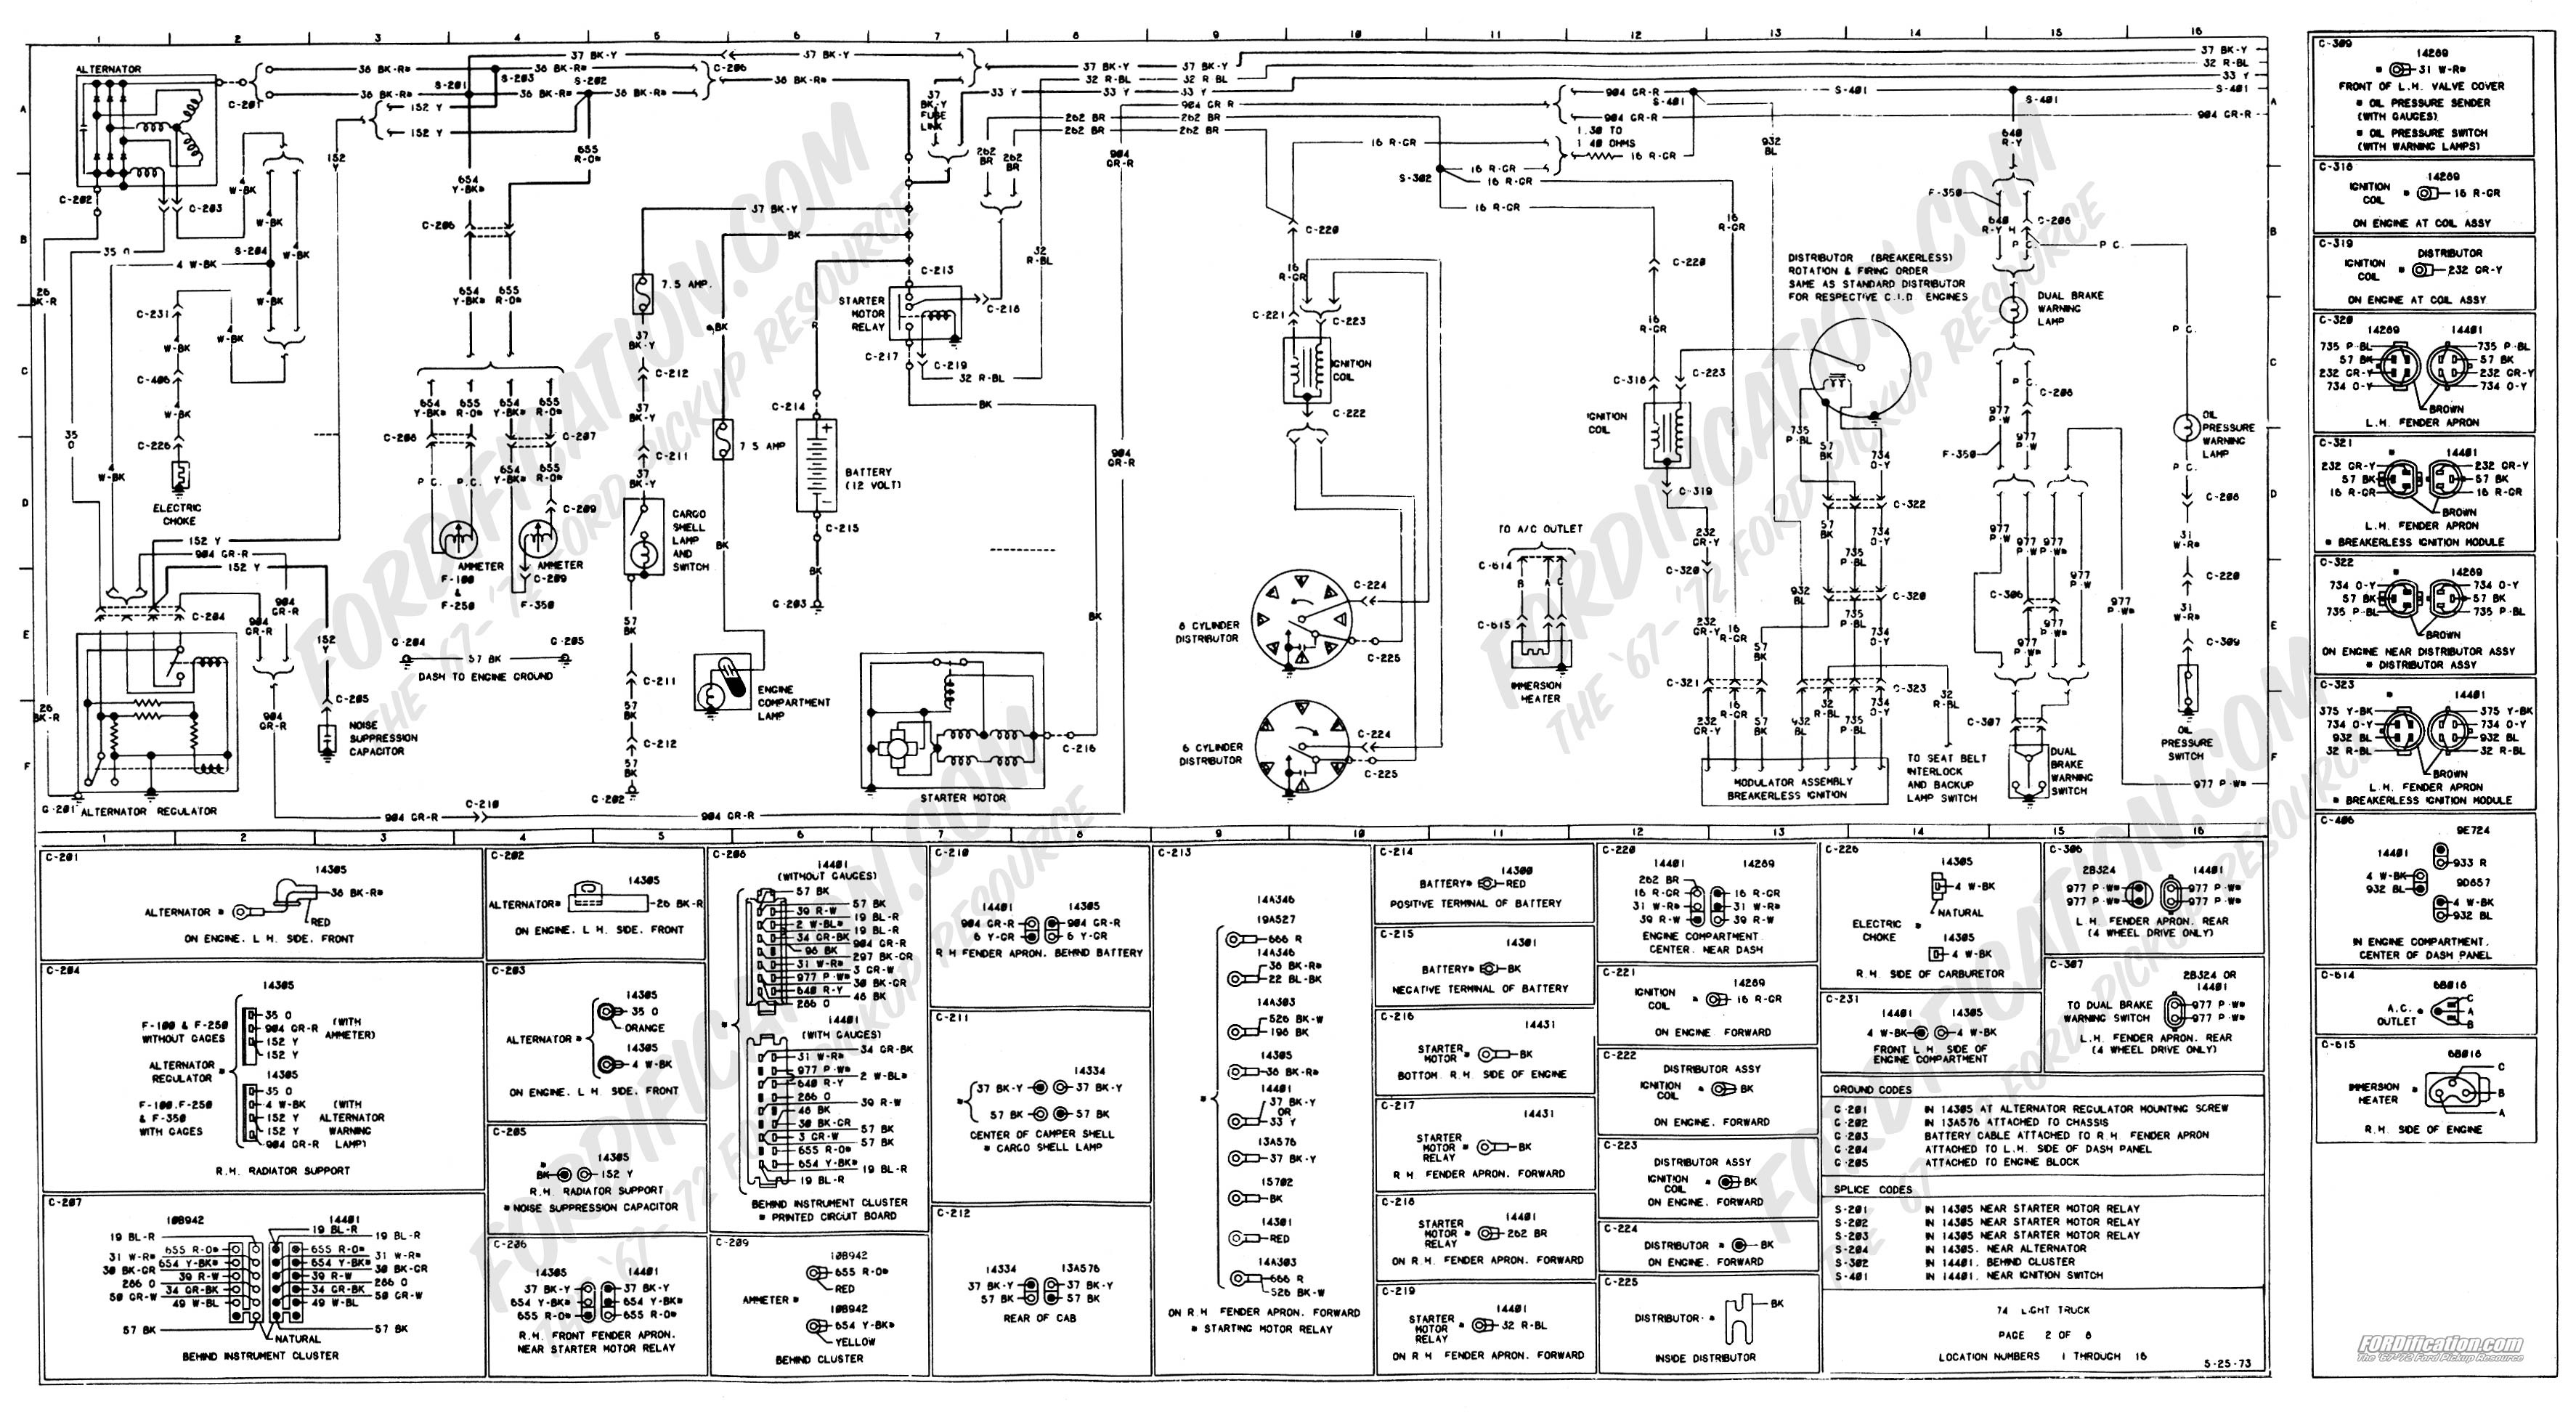 ford f700 distributor wiring schematics auto electrical wiring diagram rh exsd me 2008 Sterling Truck Wiring Schematic 2007 Sterling Truck Wiring Diagram